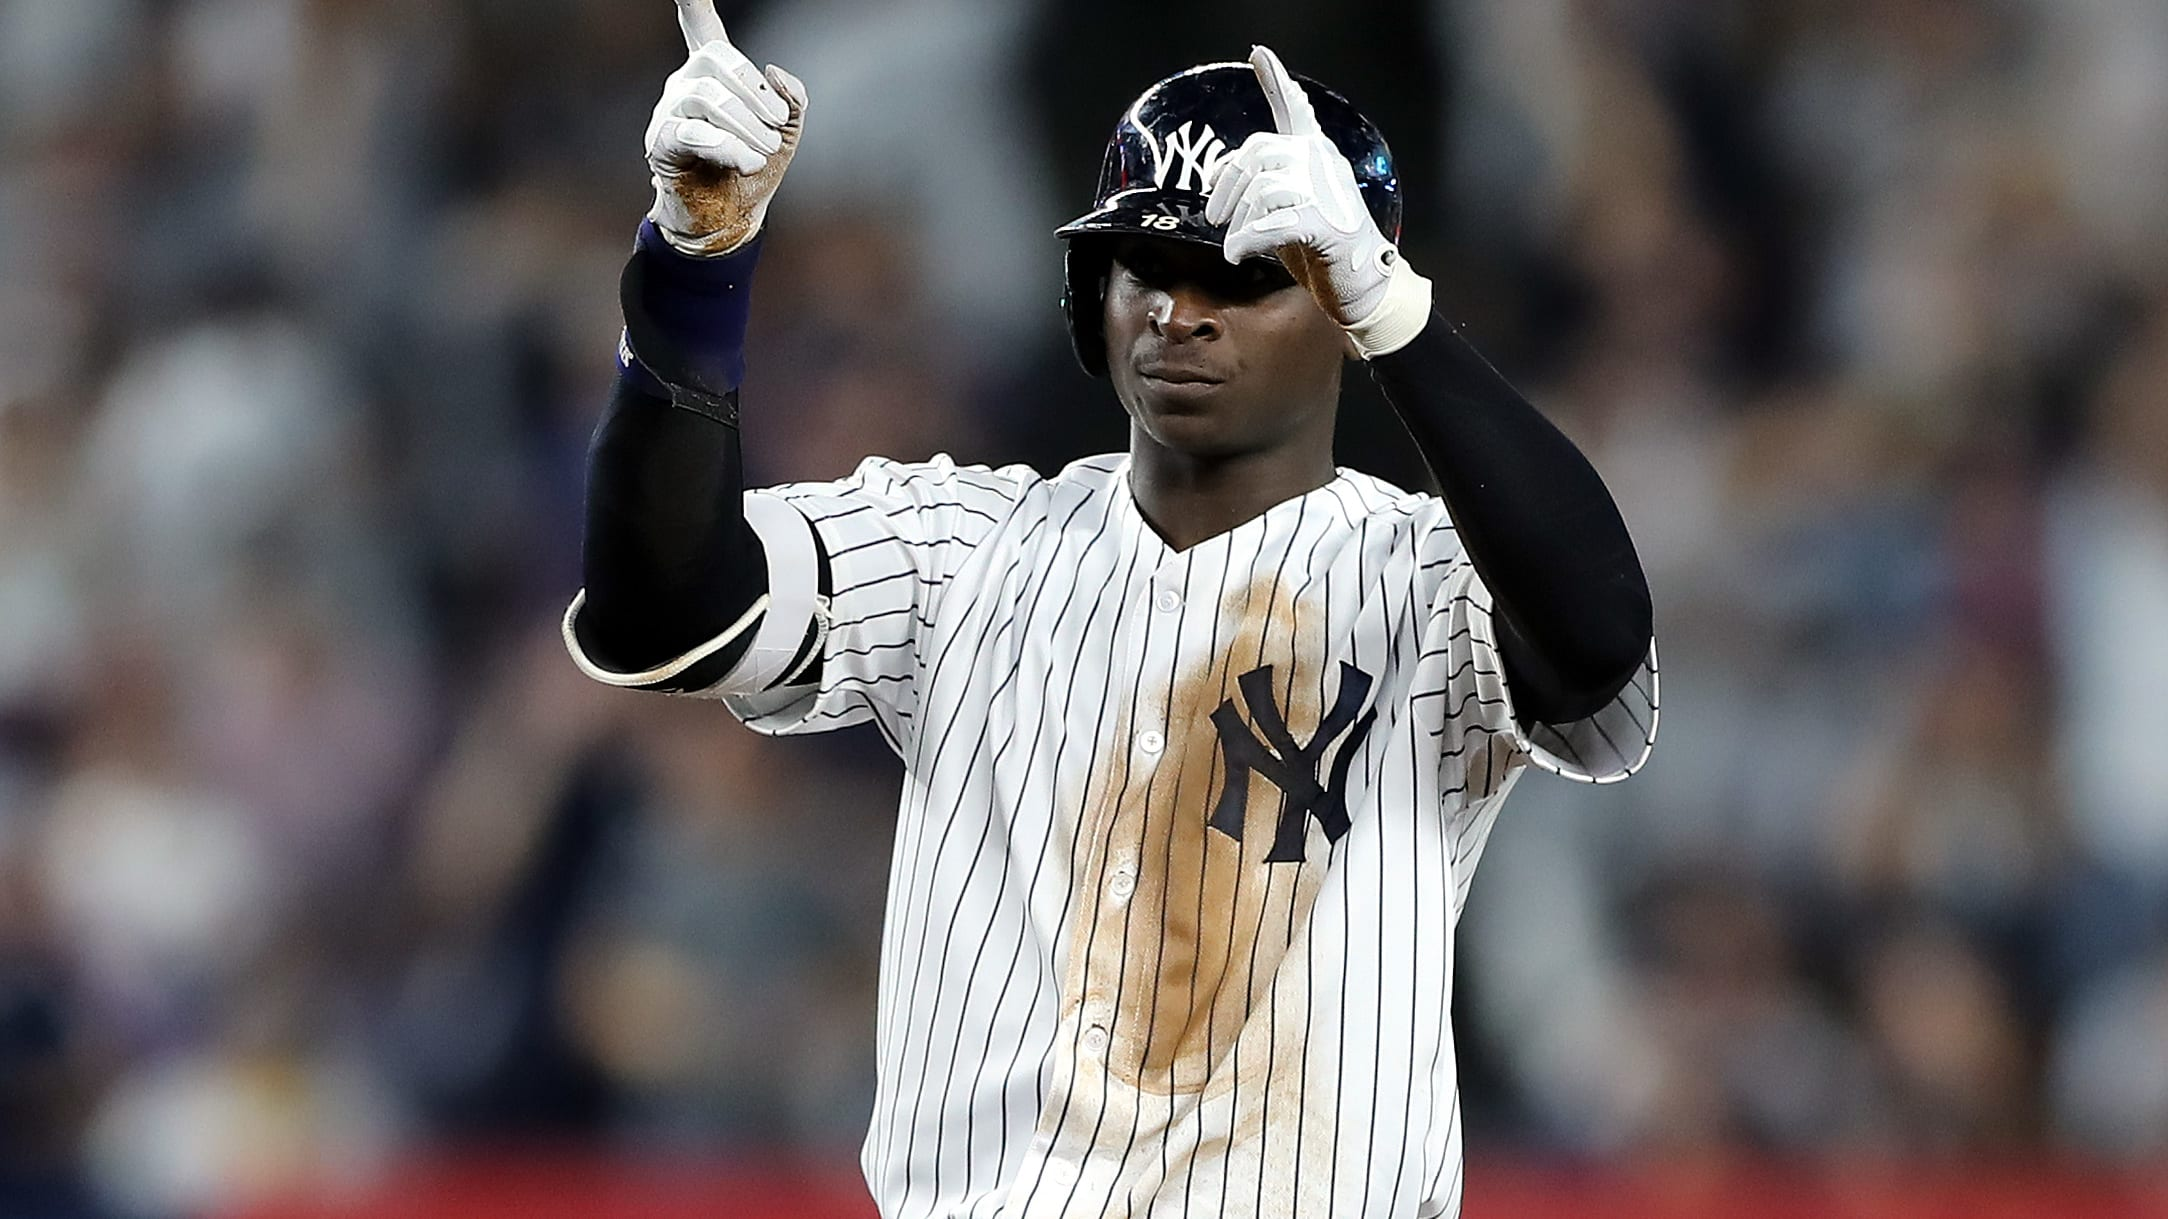 NEW YORK, NEW YORK - OCTOBER 09:  Didi Gregorius #18 of the New York Yankees reacts after a double in the fourth inning against the Boston Red Sox during Game Four American League Division Series at Yankee Stadium on October 09, 2018 in the Bronx borough of New York City. (Photo by Elsa/Getty Images)